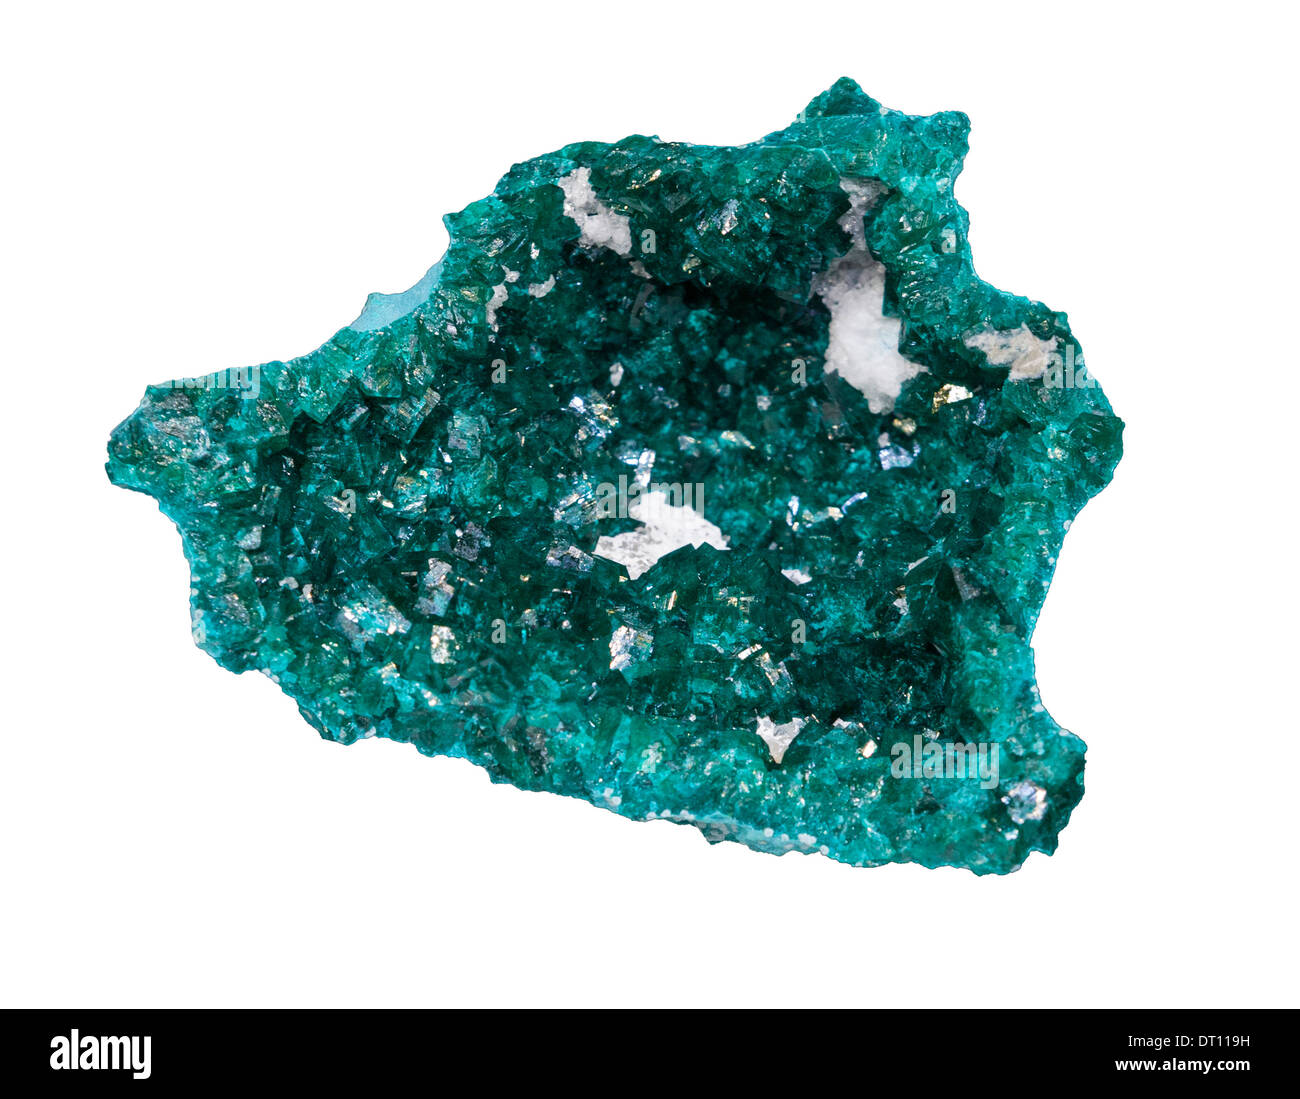 Dioptase is an intense emerald-green to bluish-green copper cyclosilicate mineral. It is transparent to translucent. - Stock Image